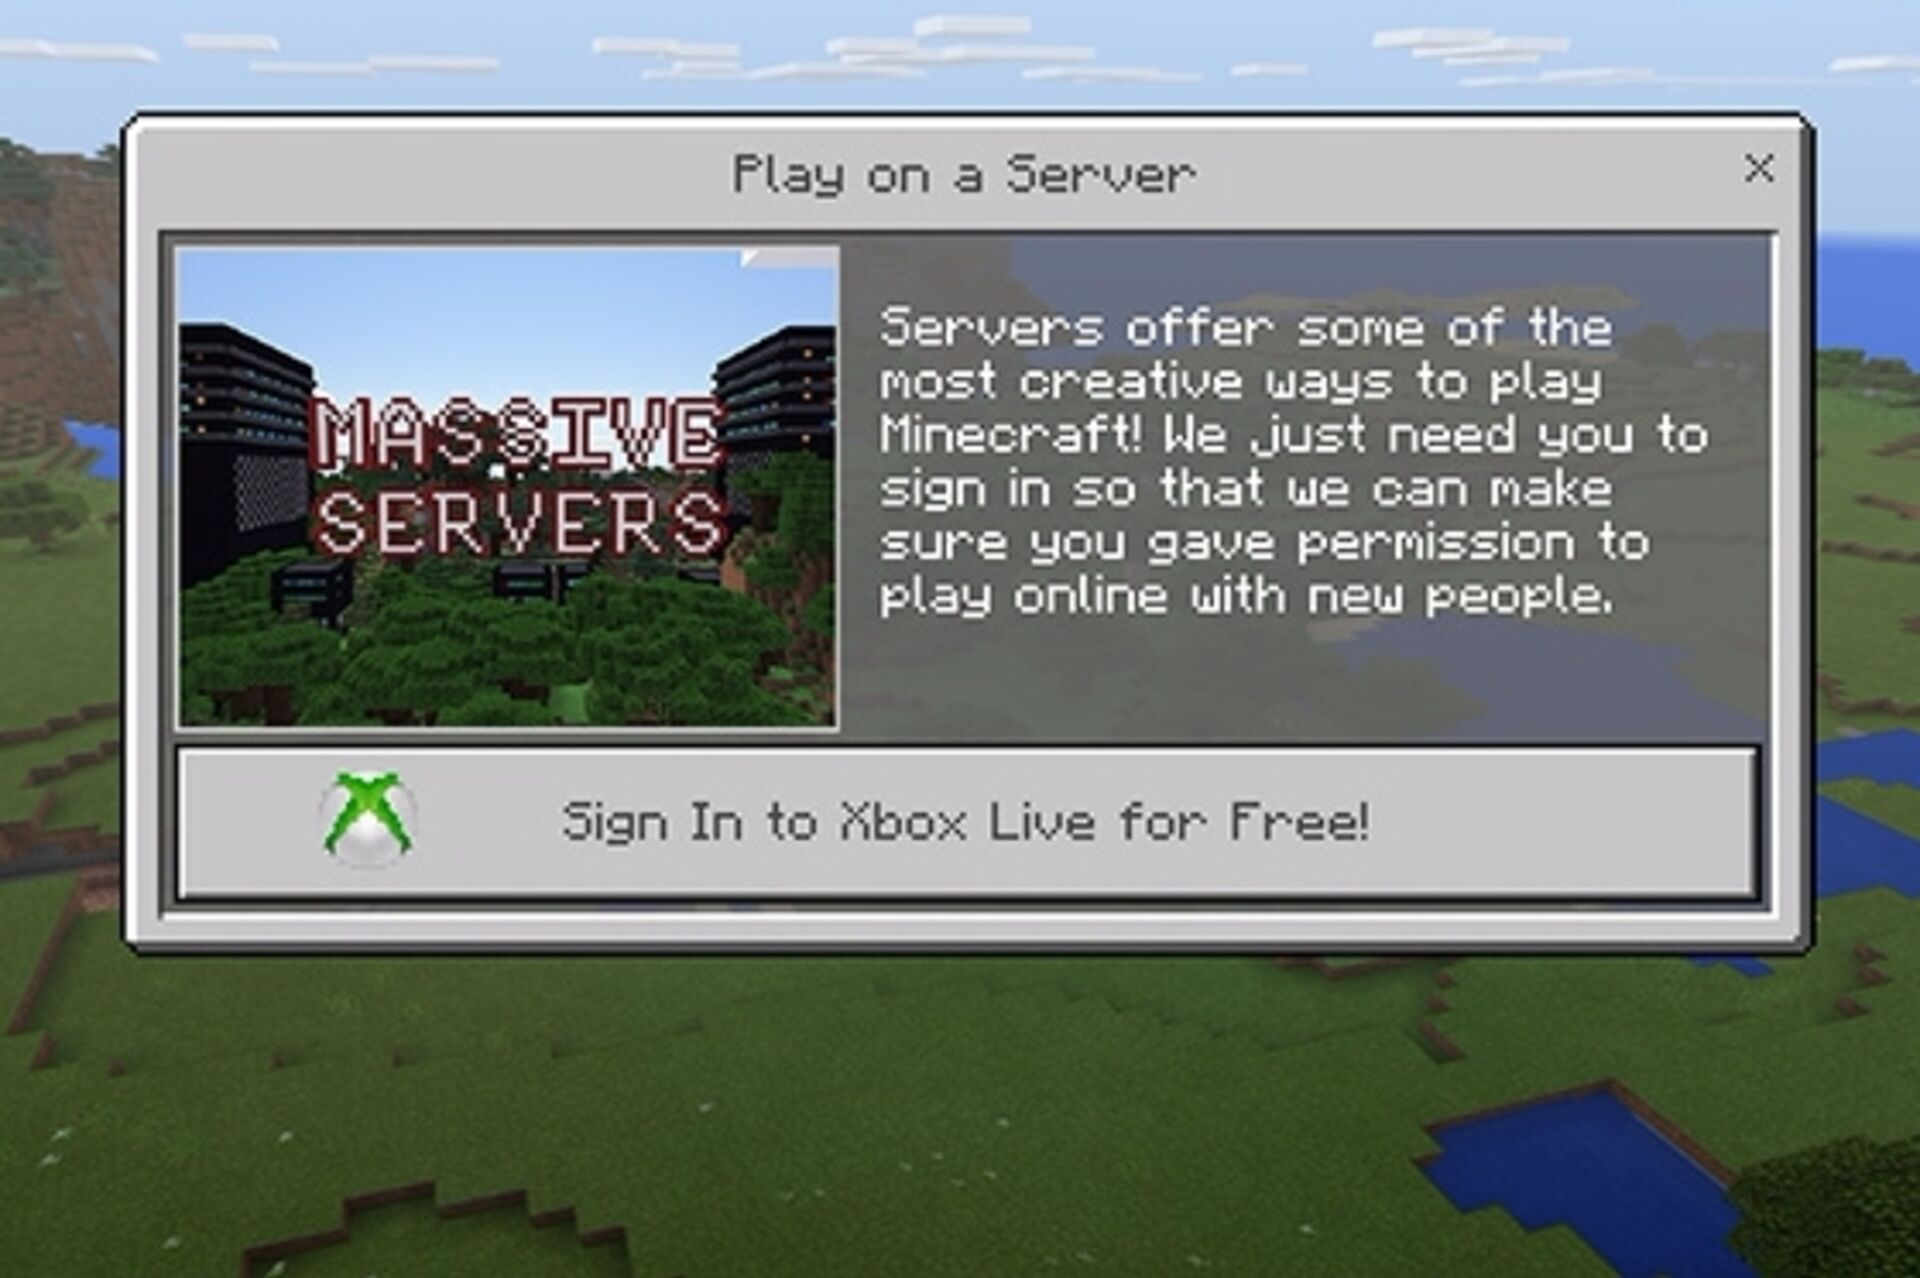 Microsoft really wants you to know playing Minecraft online is safe